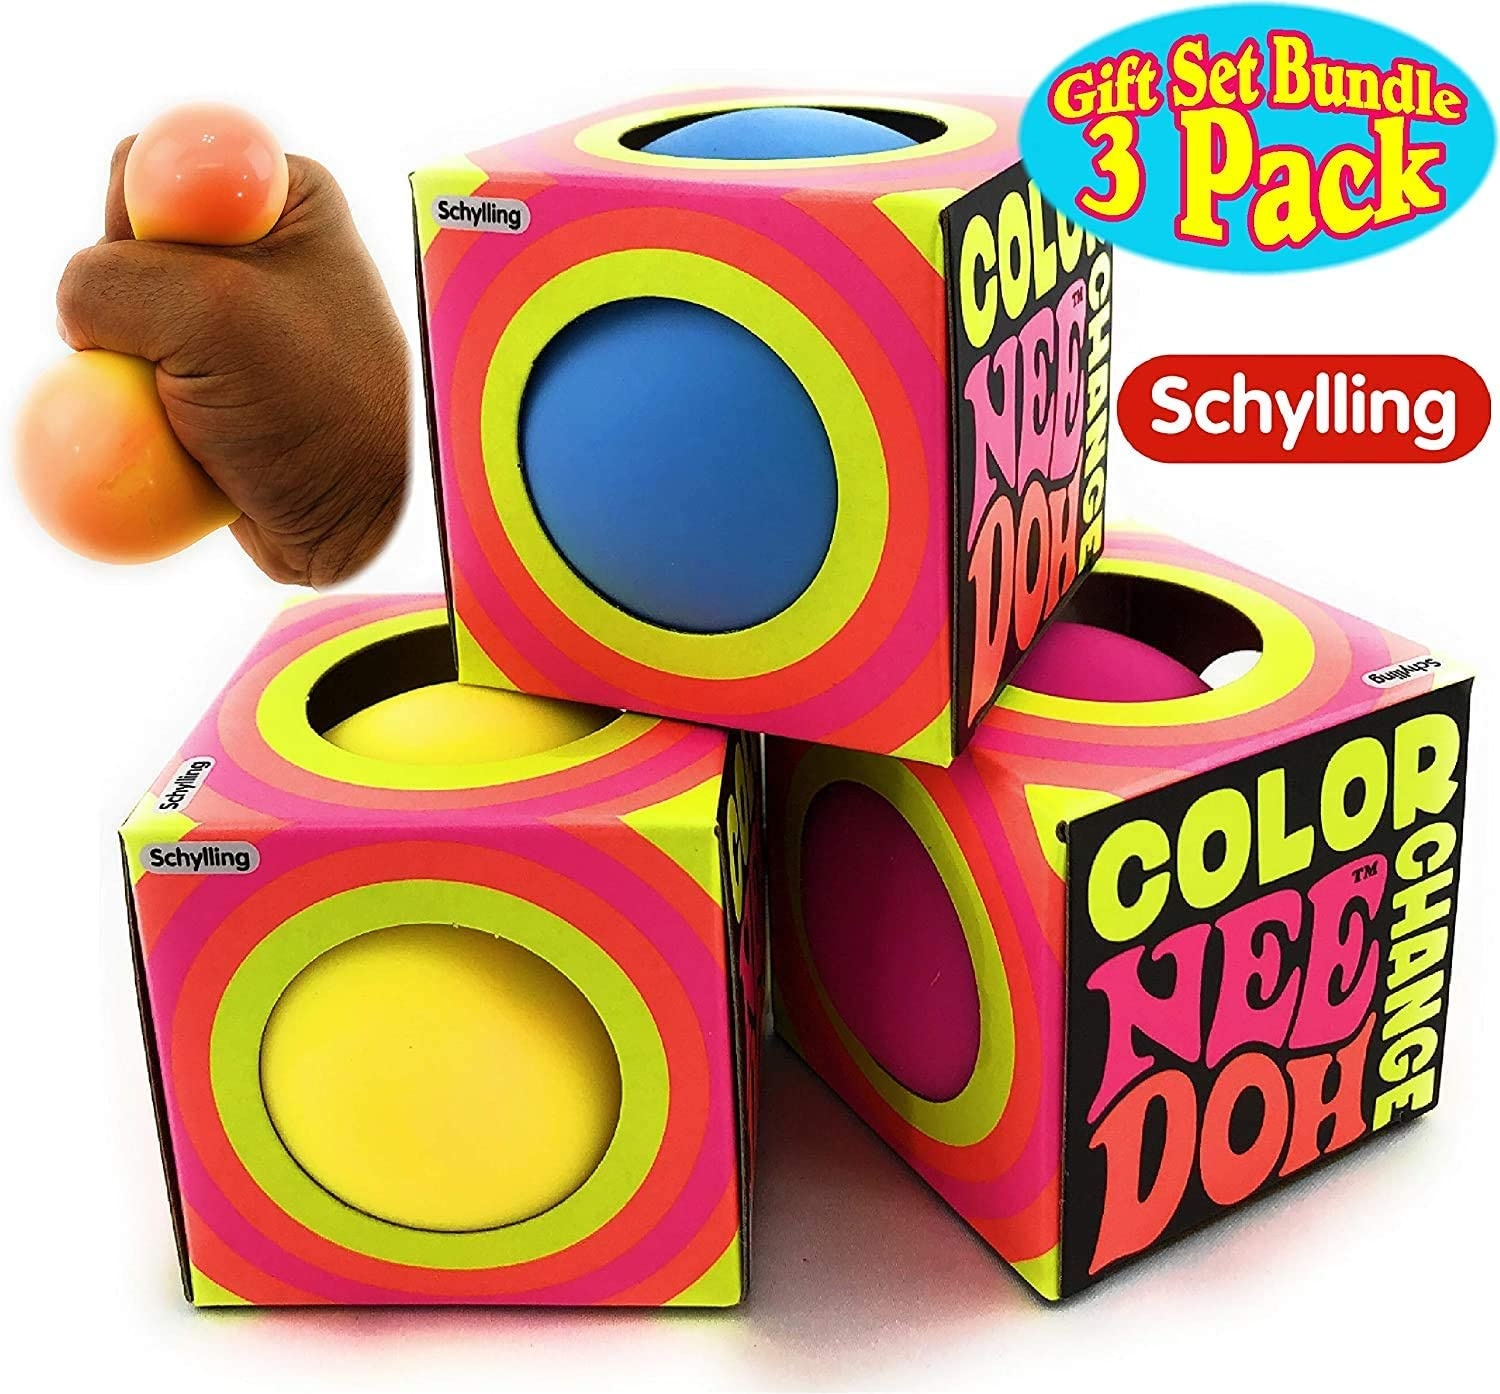 Schylling Color Changing Nee Doh  - DOHJEE